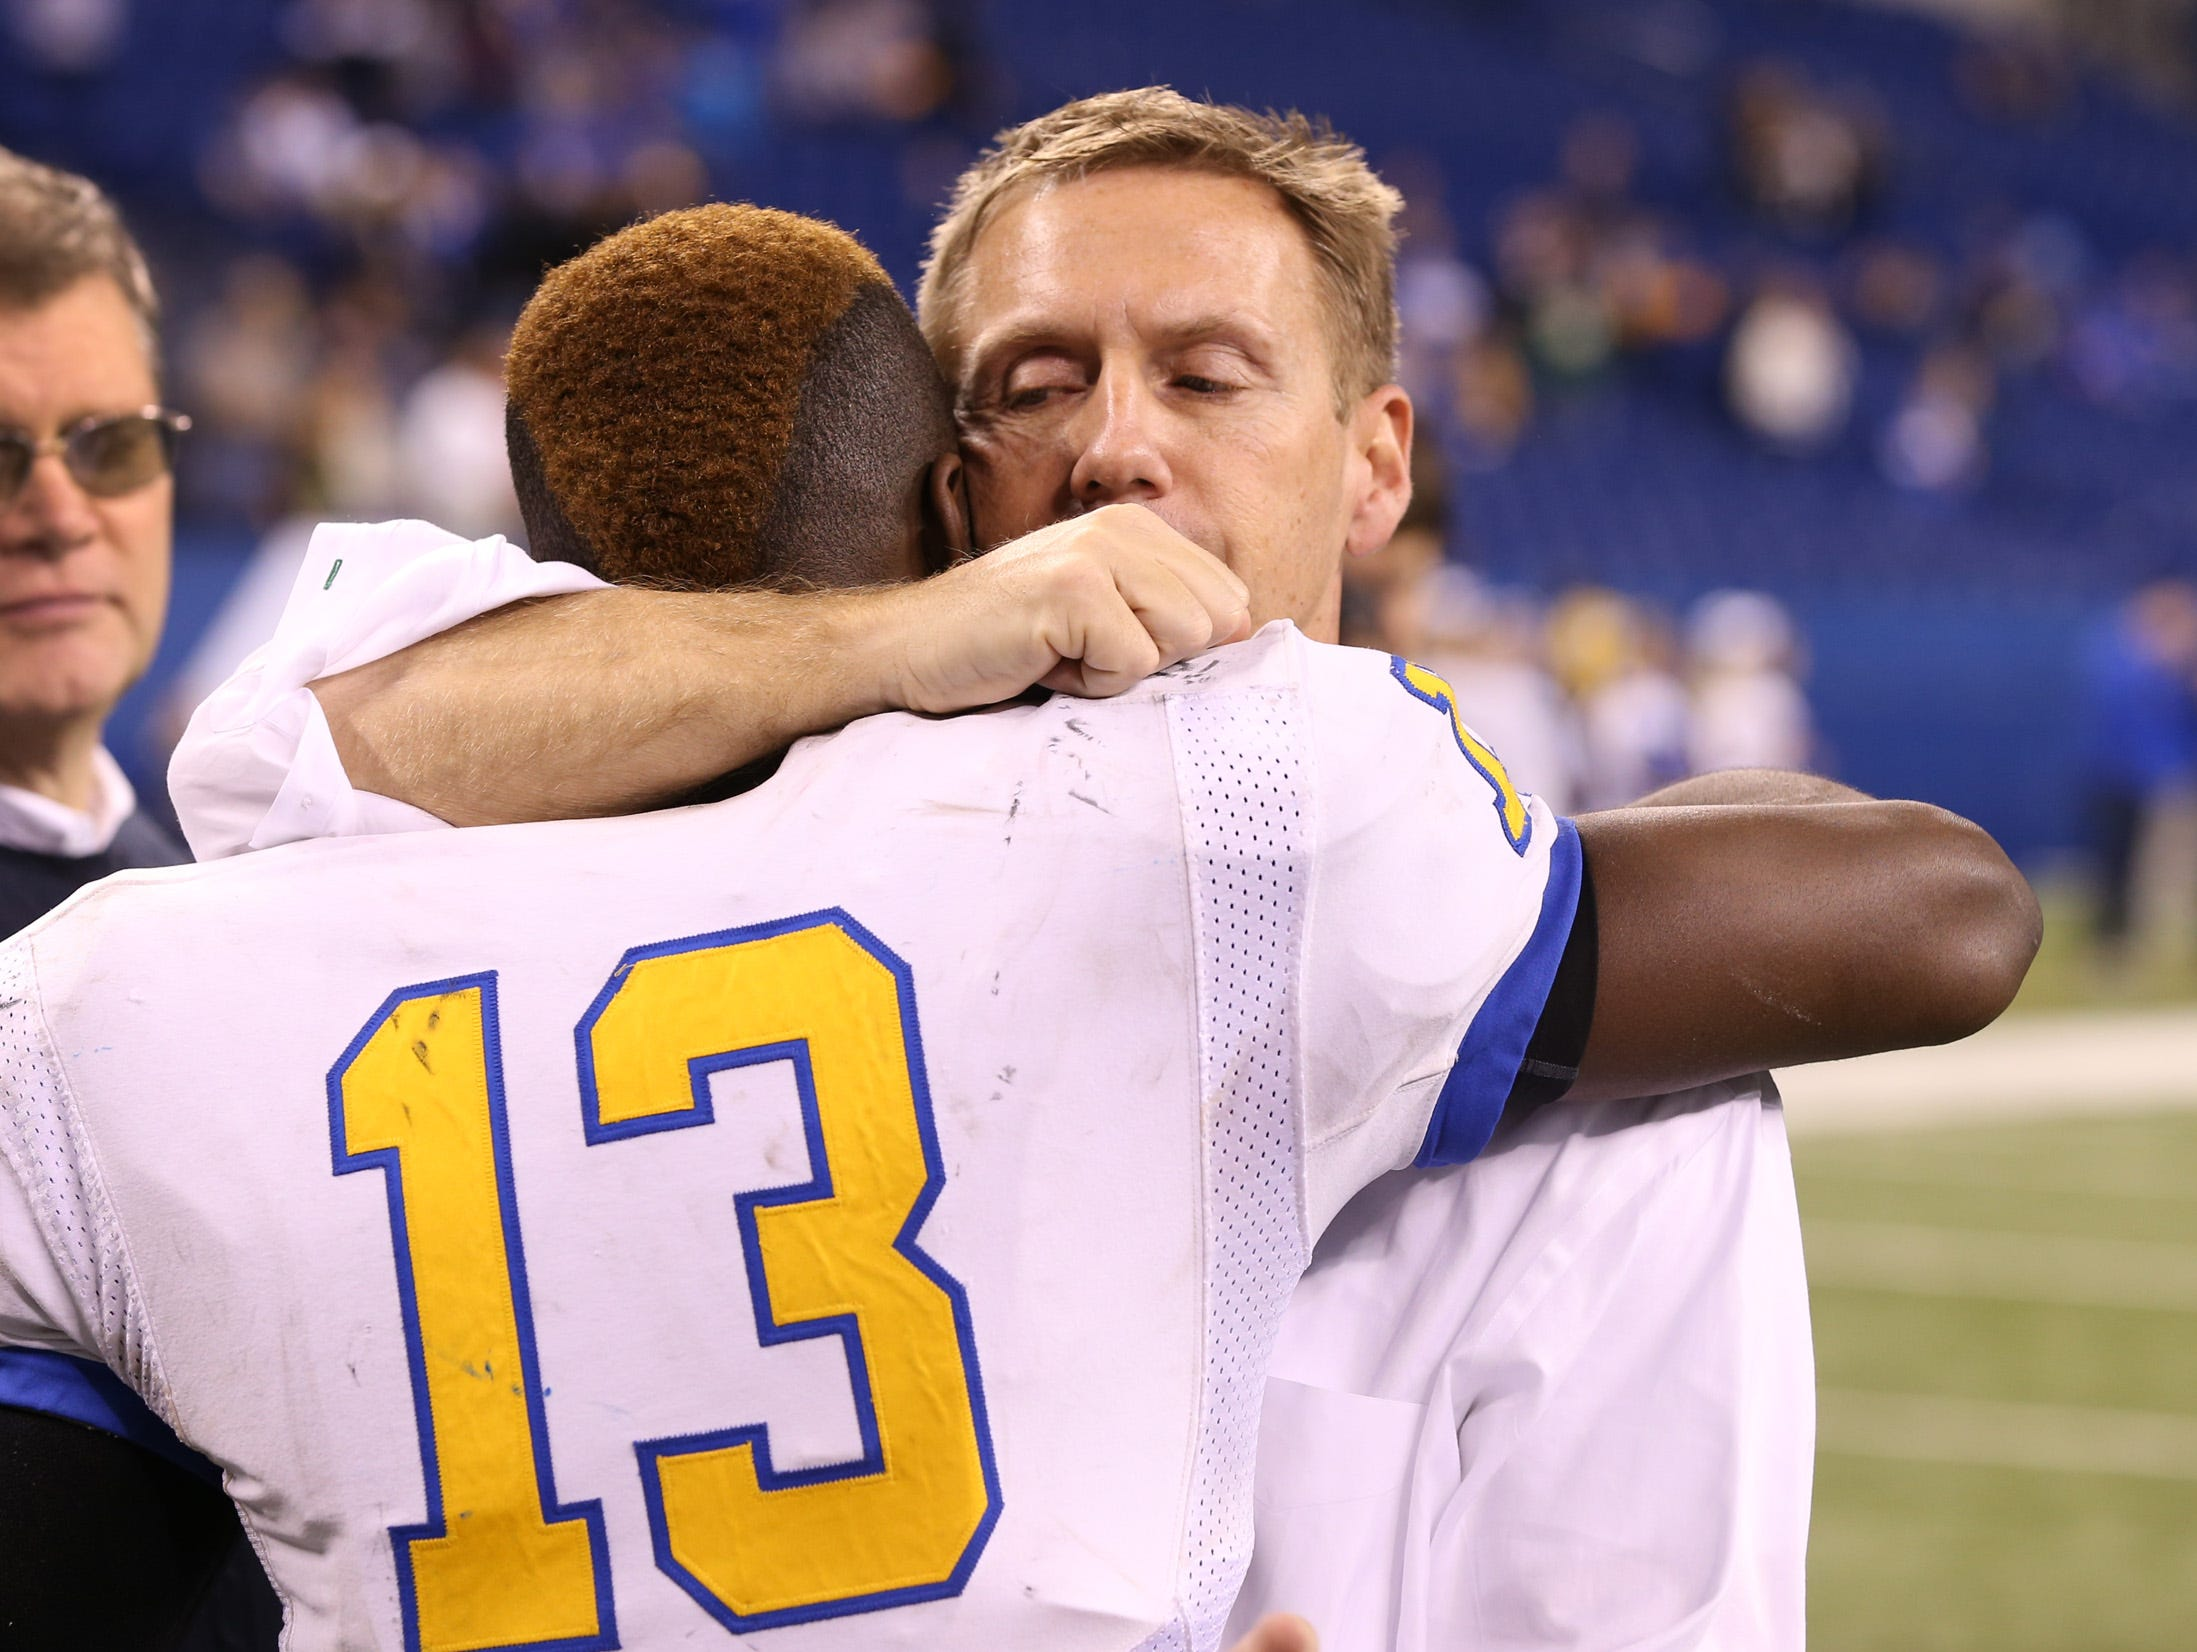 Carmel's head coach Kevin Wright hugs his quarterback Isaac James after their 6-7 loss to Warren Central. The Carmel Greyhounds play the Warren Central Warriors in the IHSAA Class 6A football championship game Saturday, November 30, 2013, evening at Lucas Oil Stadium. Matt Kryger / The Star